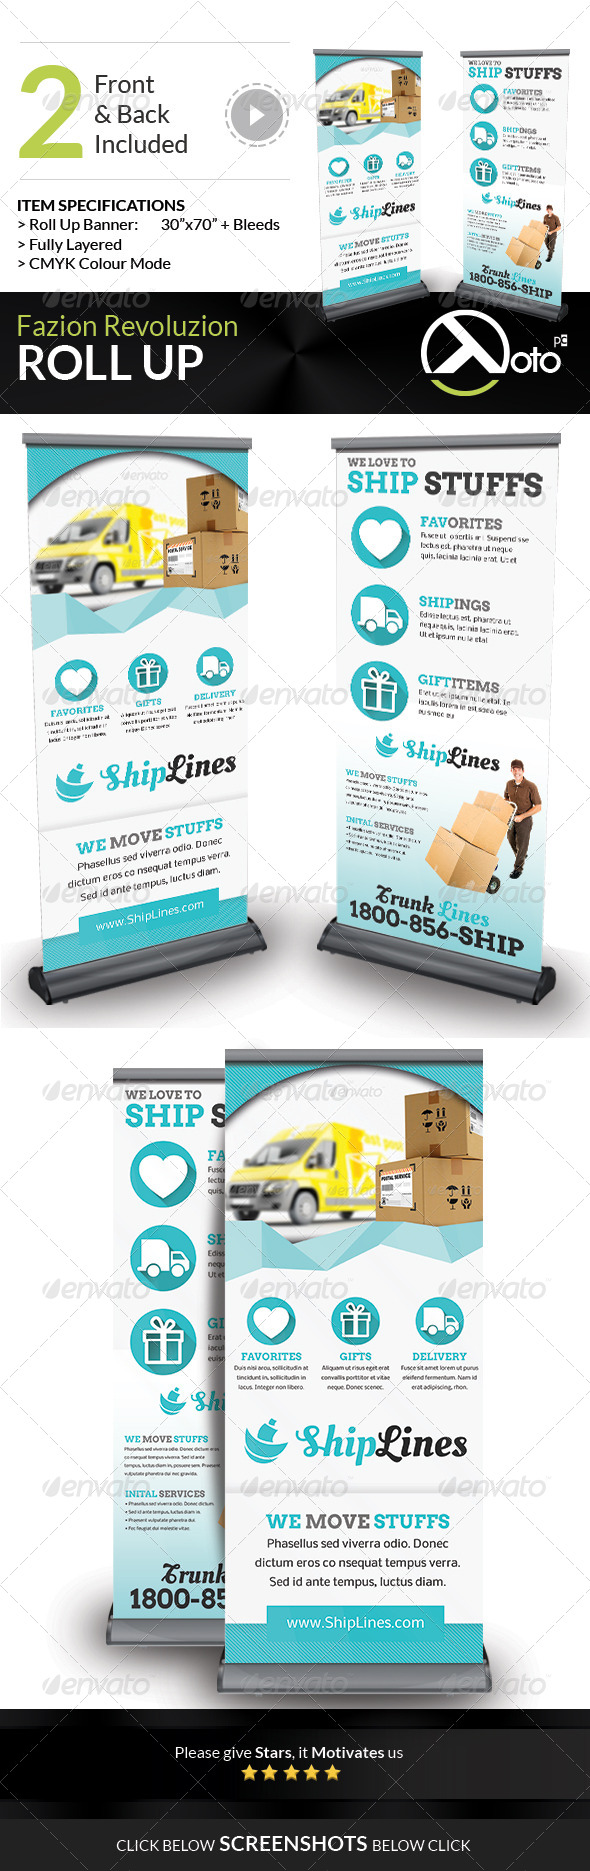 GraphicRiver Ship Lines Shipping Service Roll Up 7609844